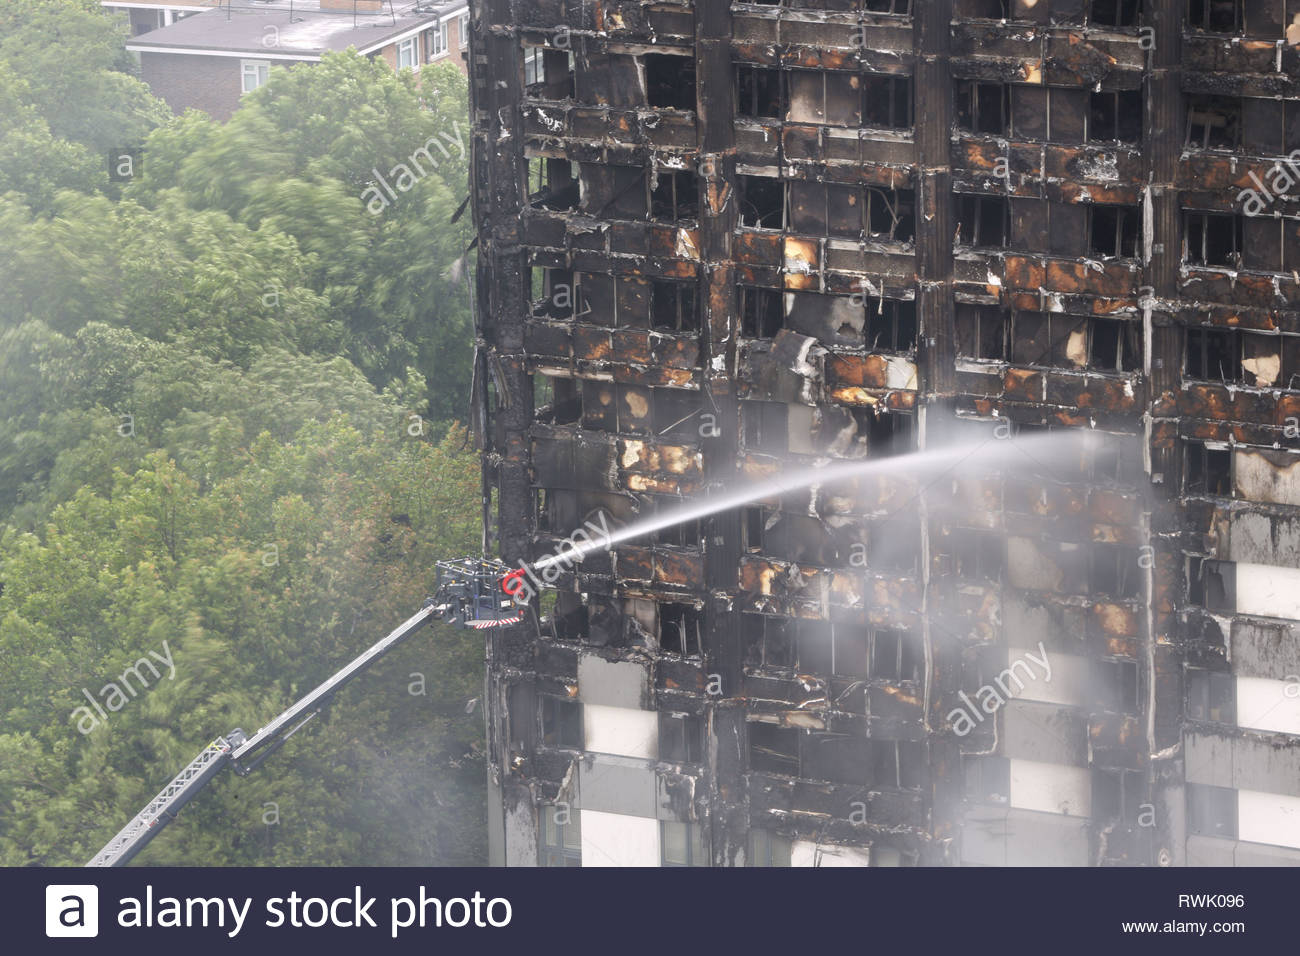 File photo dated 15/06/17 of water being sprayed on Grenfell Tower after the fire at the tower block. The Metropolitan Police said the criminal investigation into the fire is 'unlikely' to submit a file to the Crown Prosecution Service 'sooner than the latter part of 2021' after the conclusion of the second phase of the independent inquiry. - Stock Image